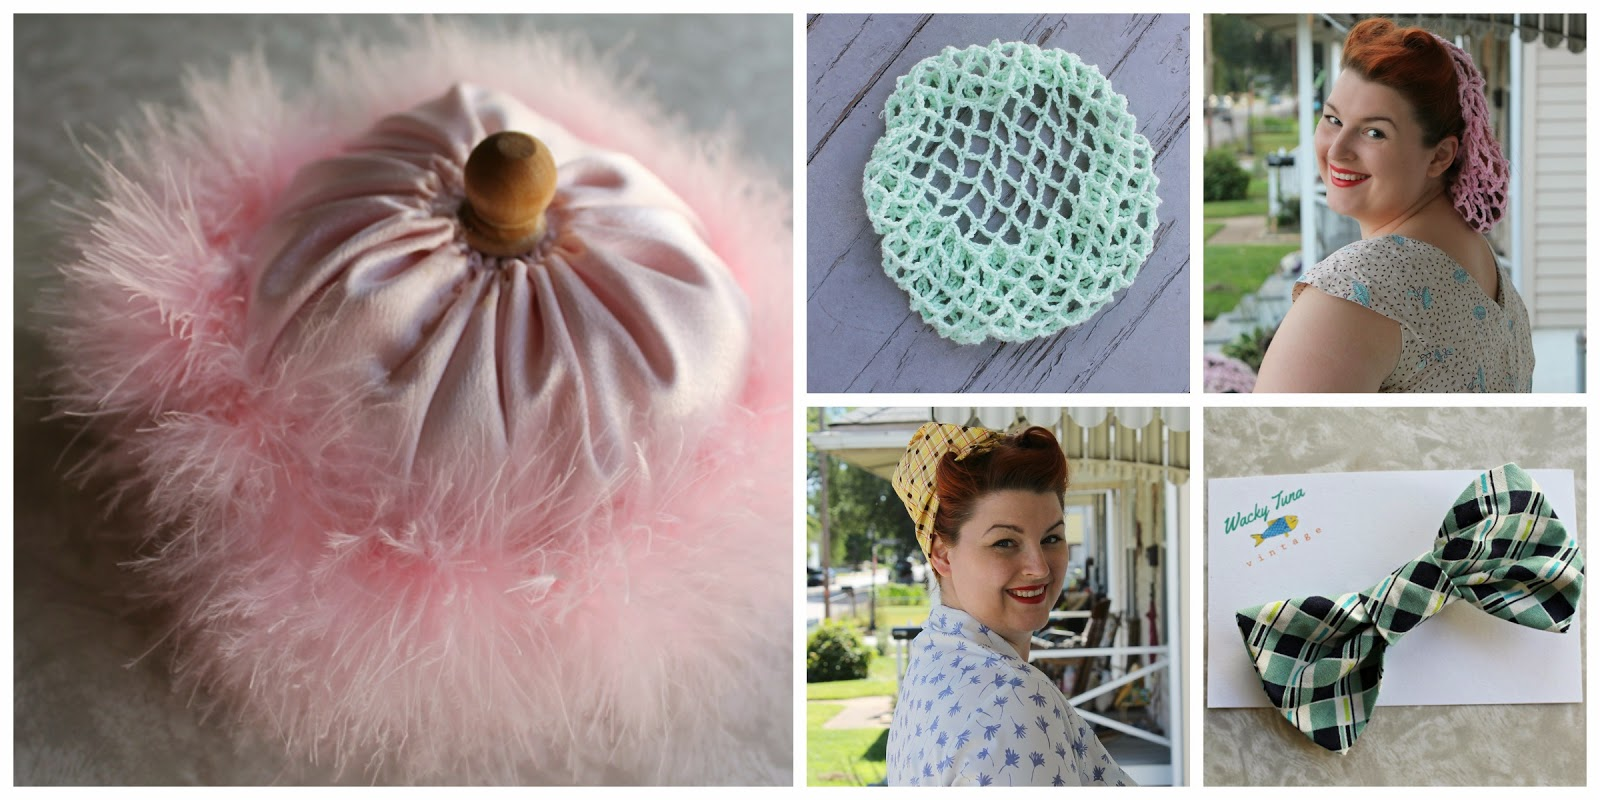 vintage powder puffs, snoods and hair bows handmade by wacky tuna vintage on etsy